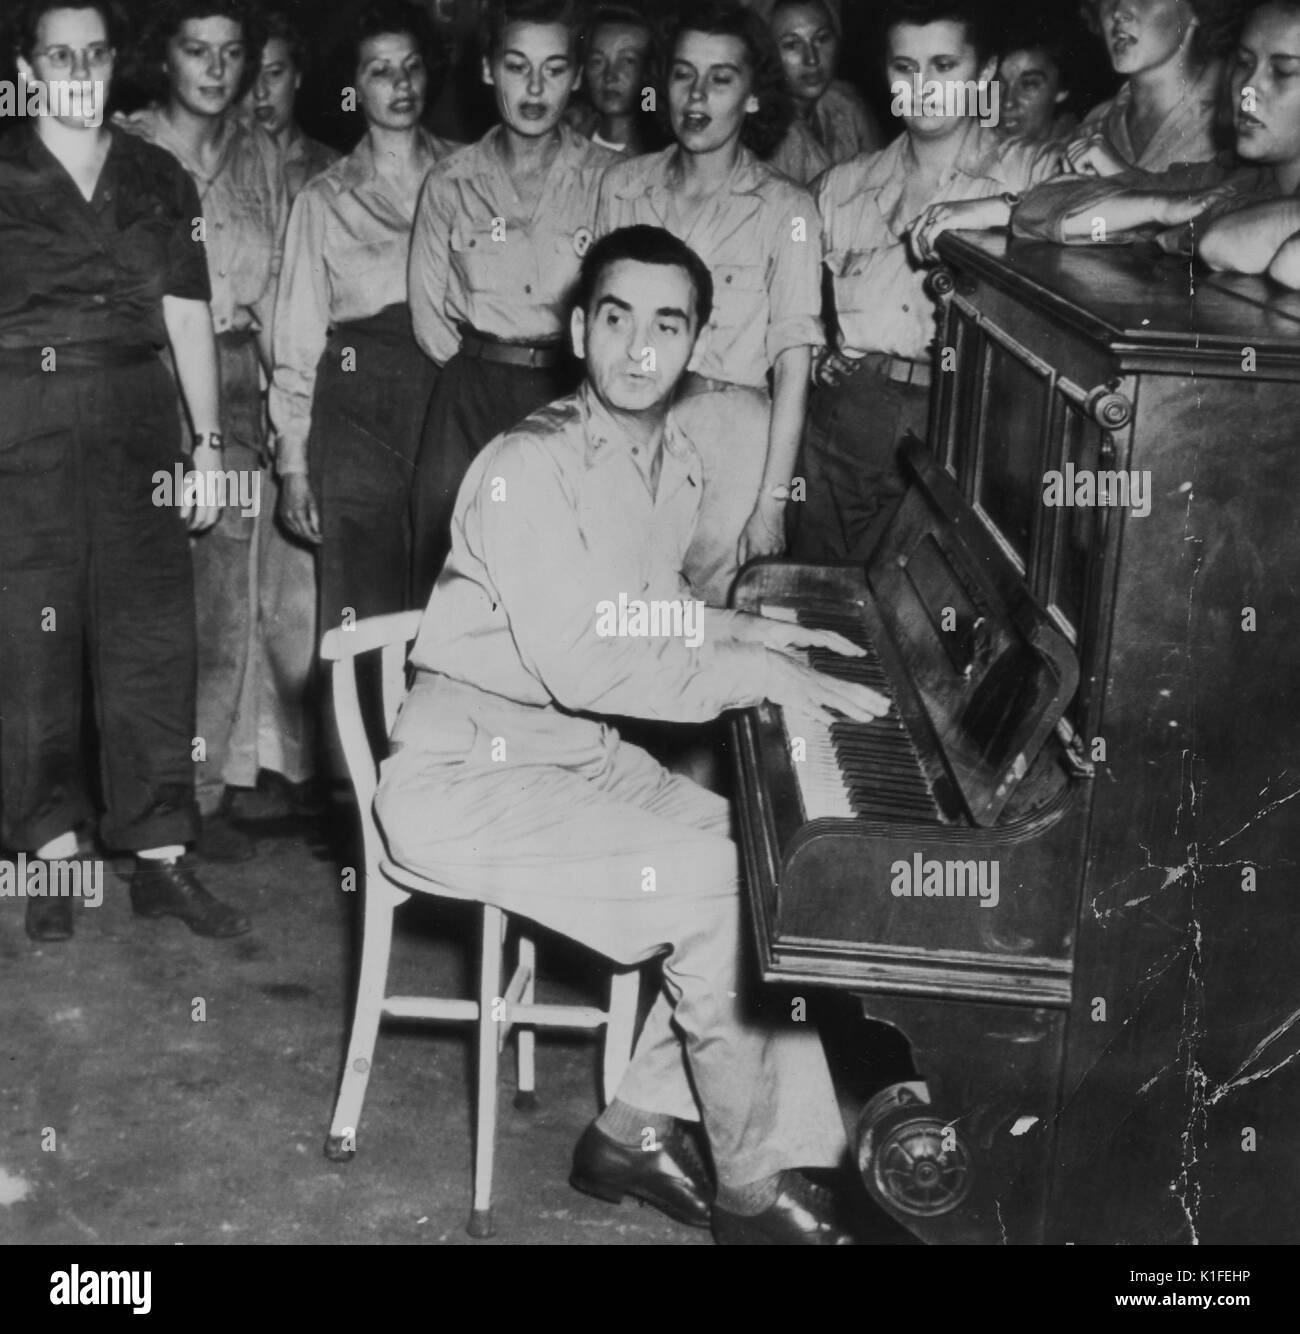 Irving Berlin plays for the United States Army Womens Army Corps at their mess hall, Hollandia, Dutch New Guinea, December 24, 1944. From the New York Public Library. - Stock Image